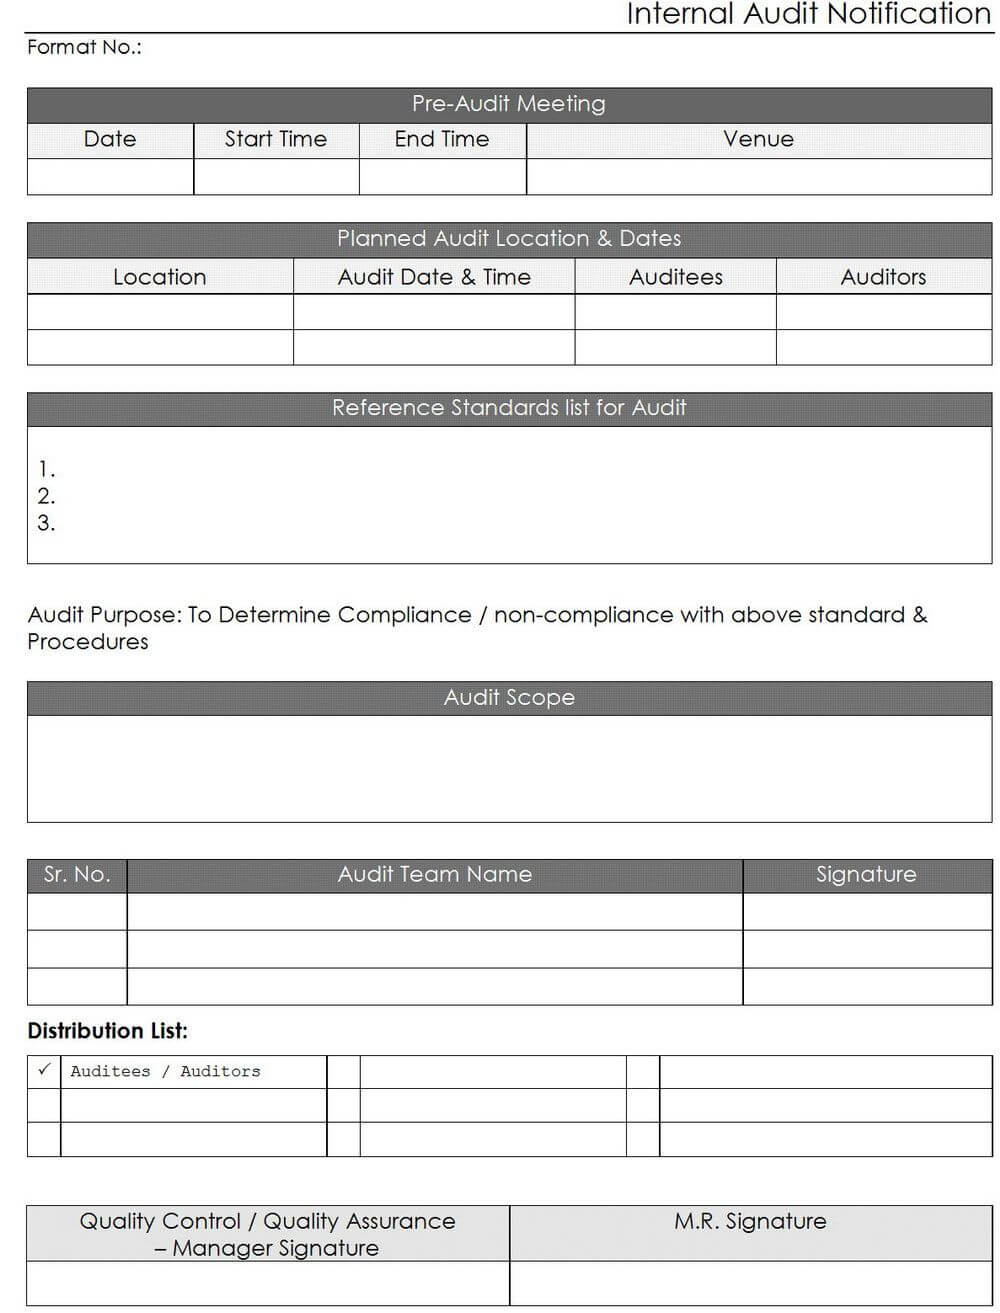 Iso Internal Audit Report Template | Internal Audit, Report Within Internal Audit Report Template Iso 9001